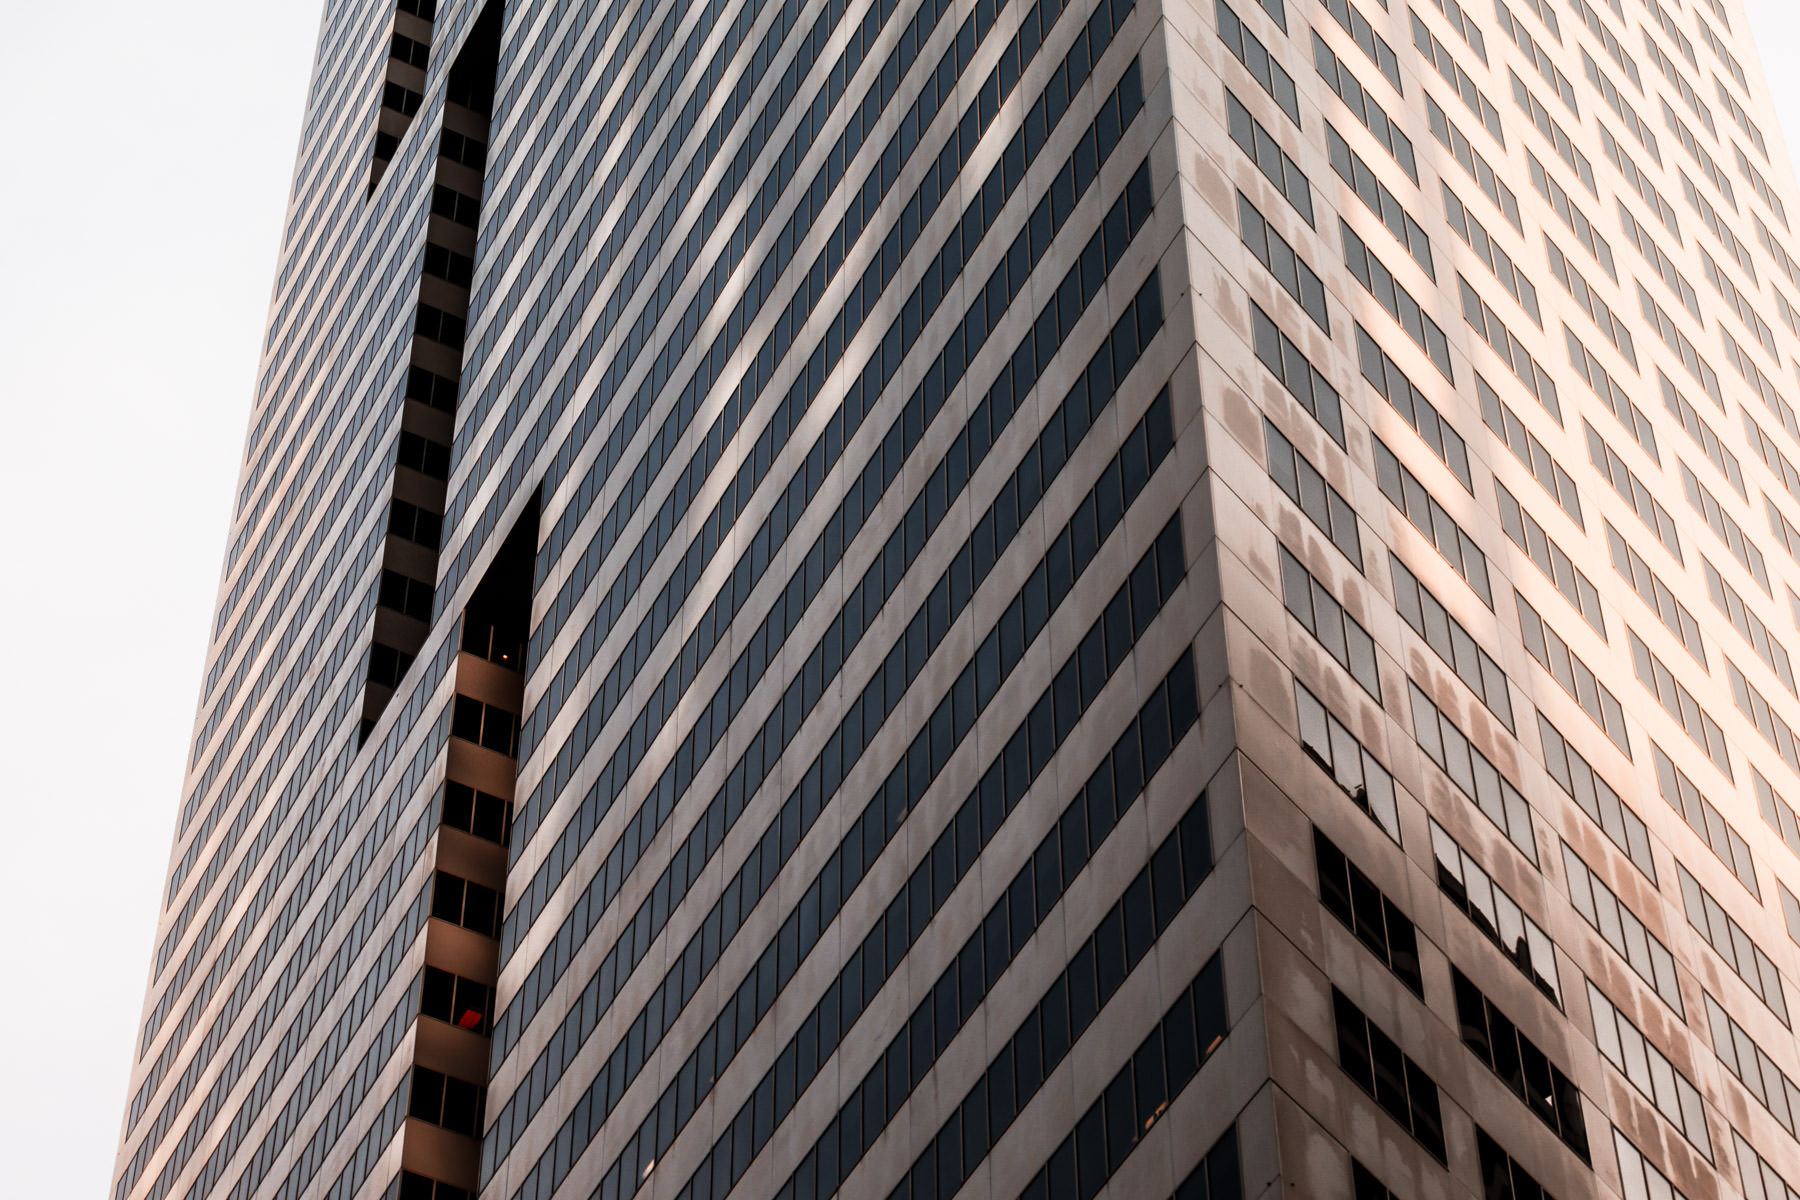 An abstract architectural study of Downtown Houston's First City Tower.